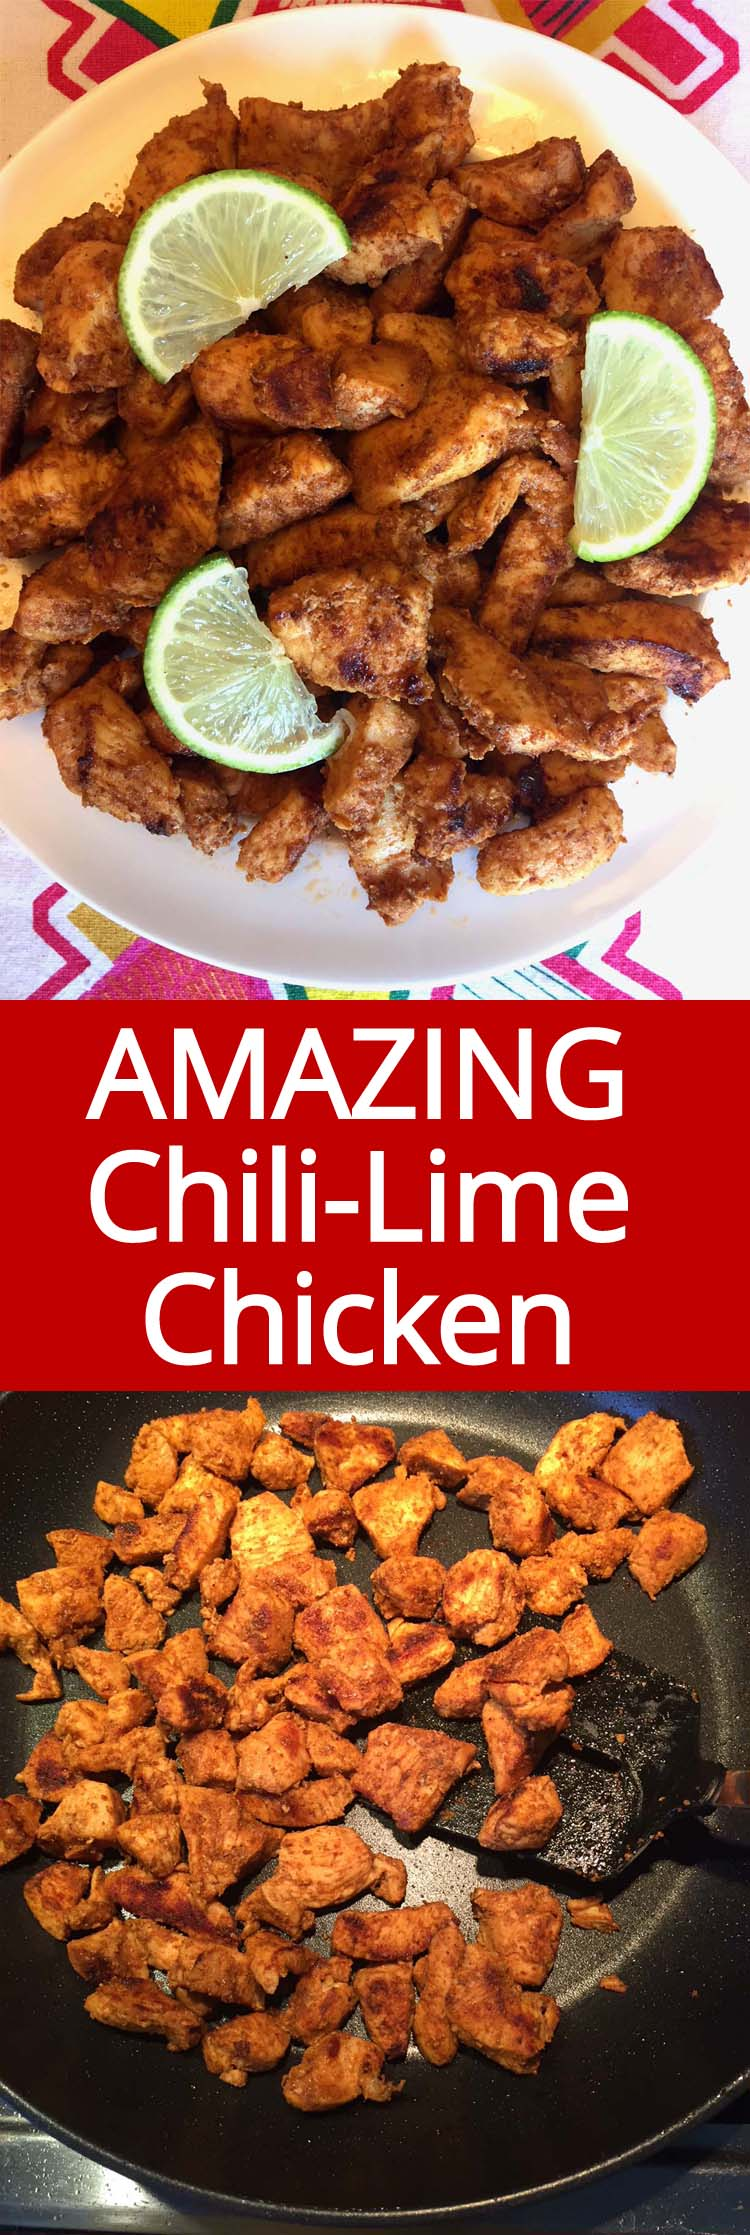 This chili lime chicken is amazing! So easy to make, healthy and full of flavor! This one is a keeper!